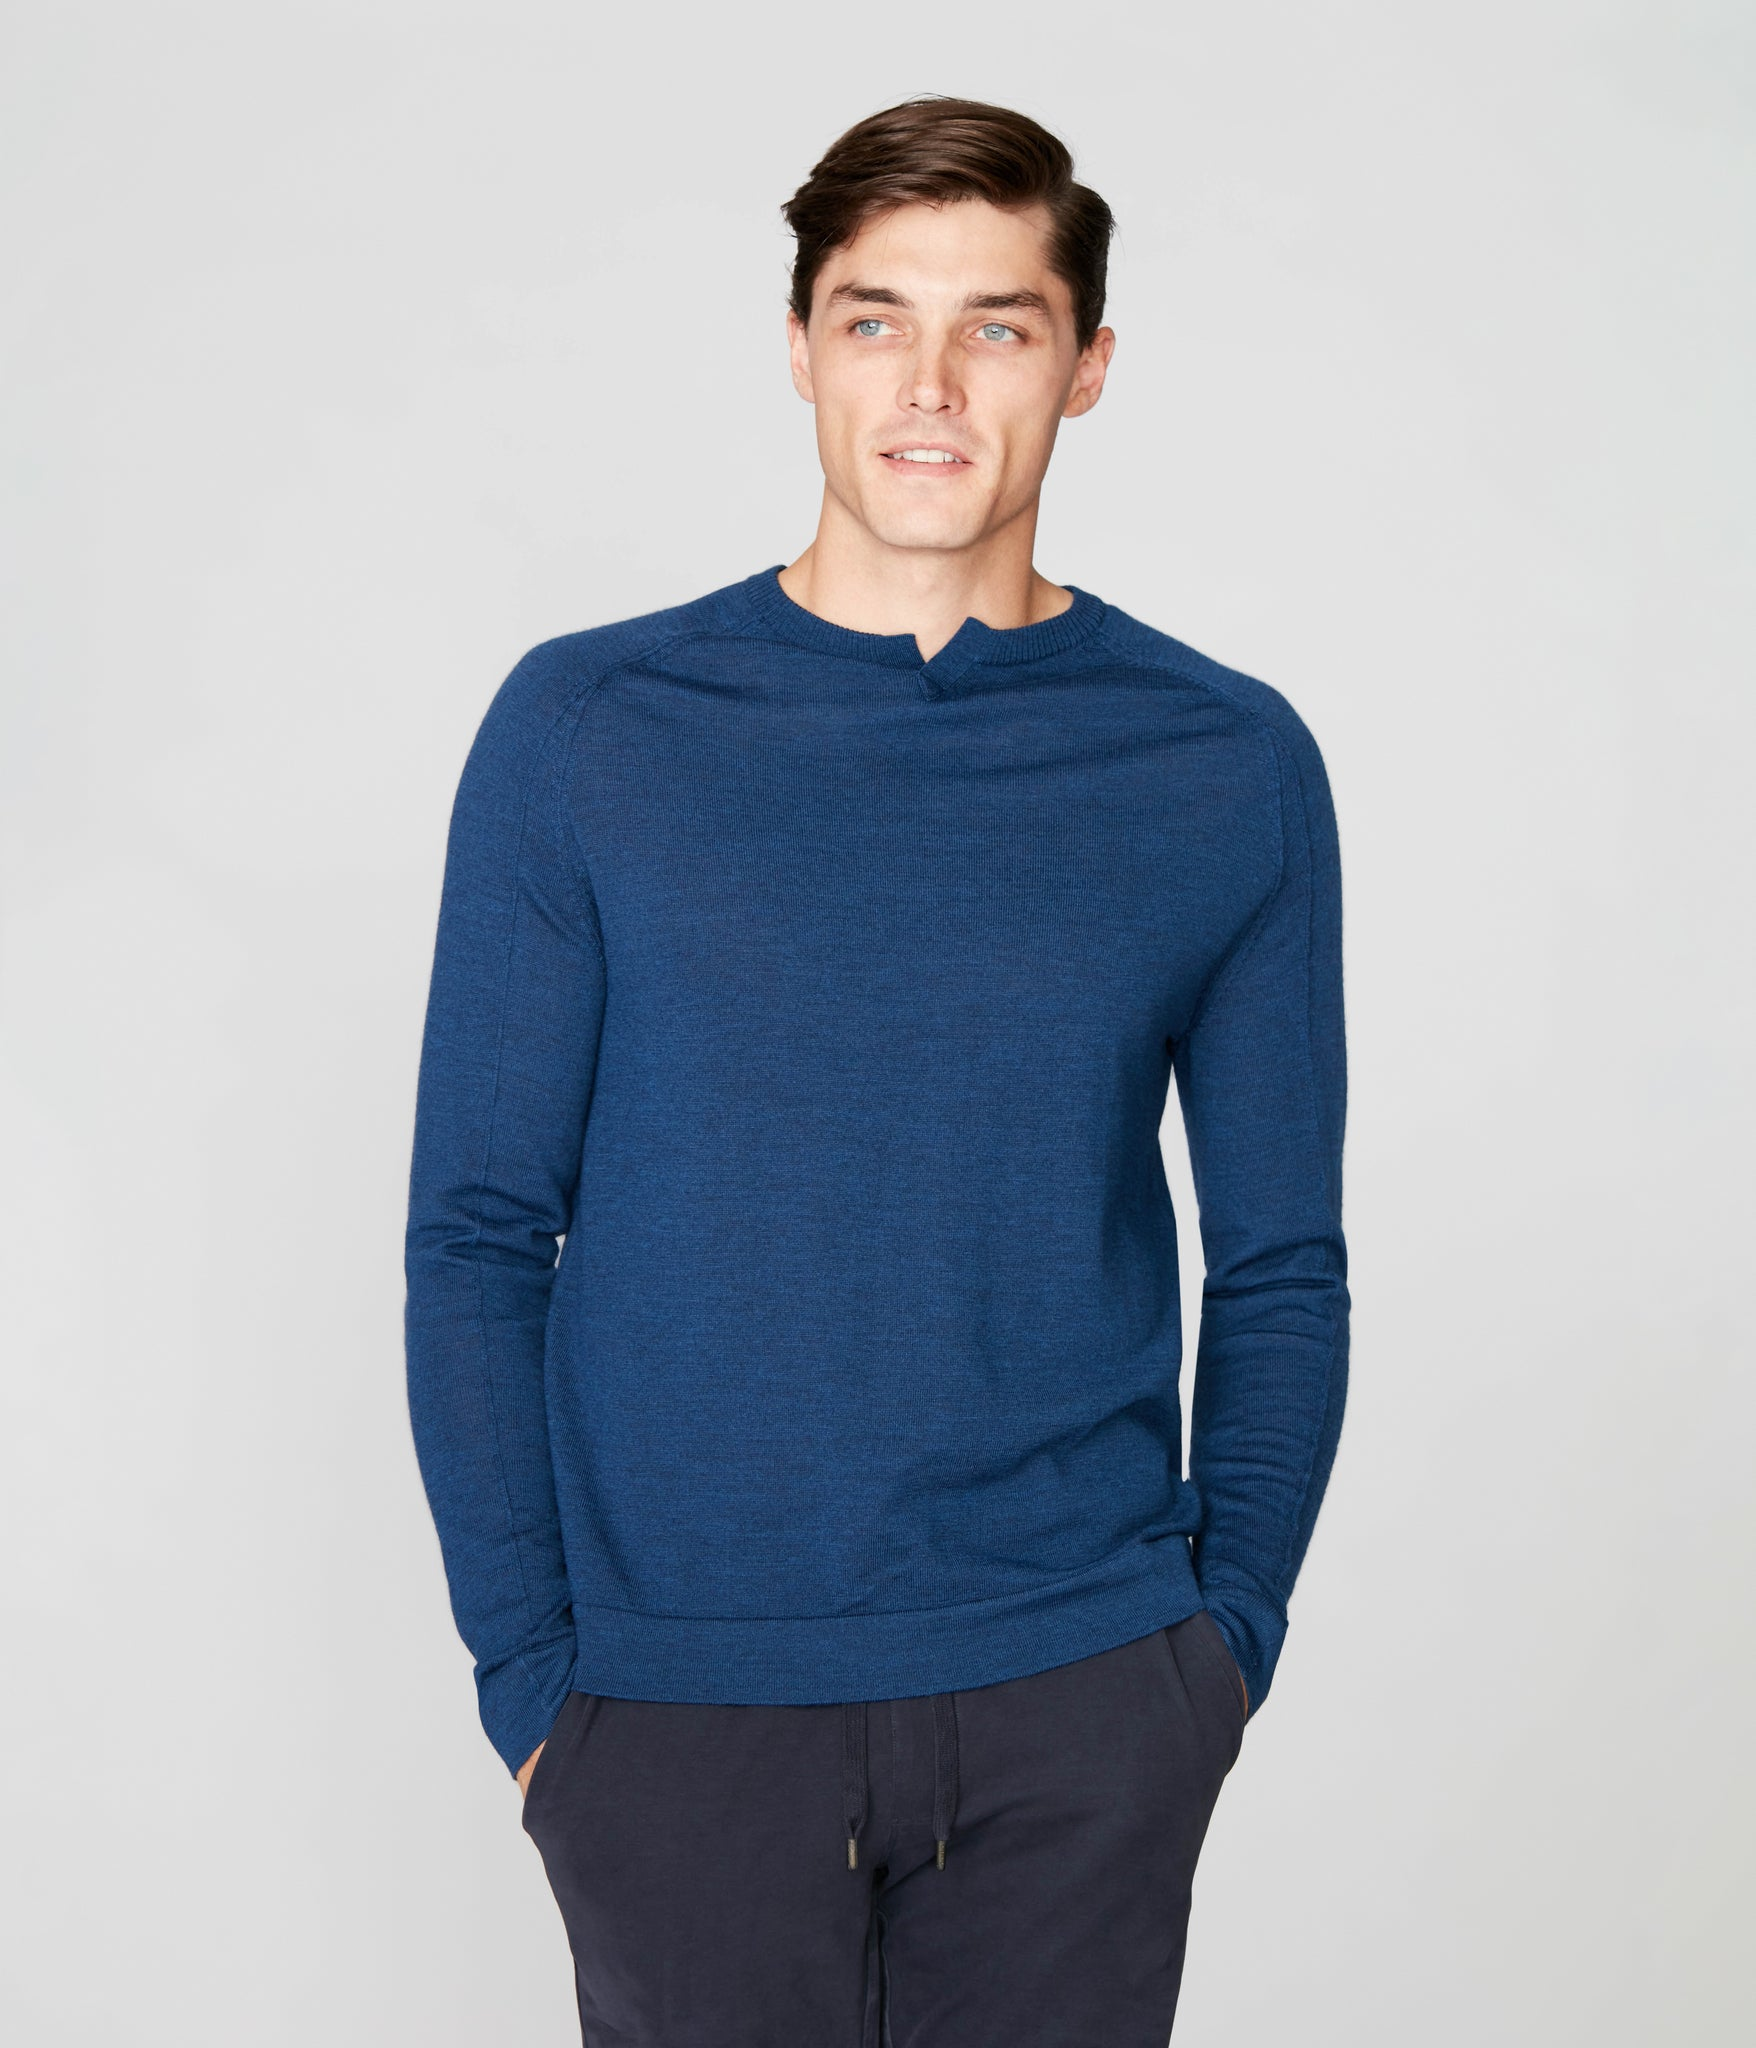 MVP V-Notch Sweater - Indigo